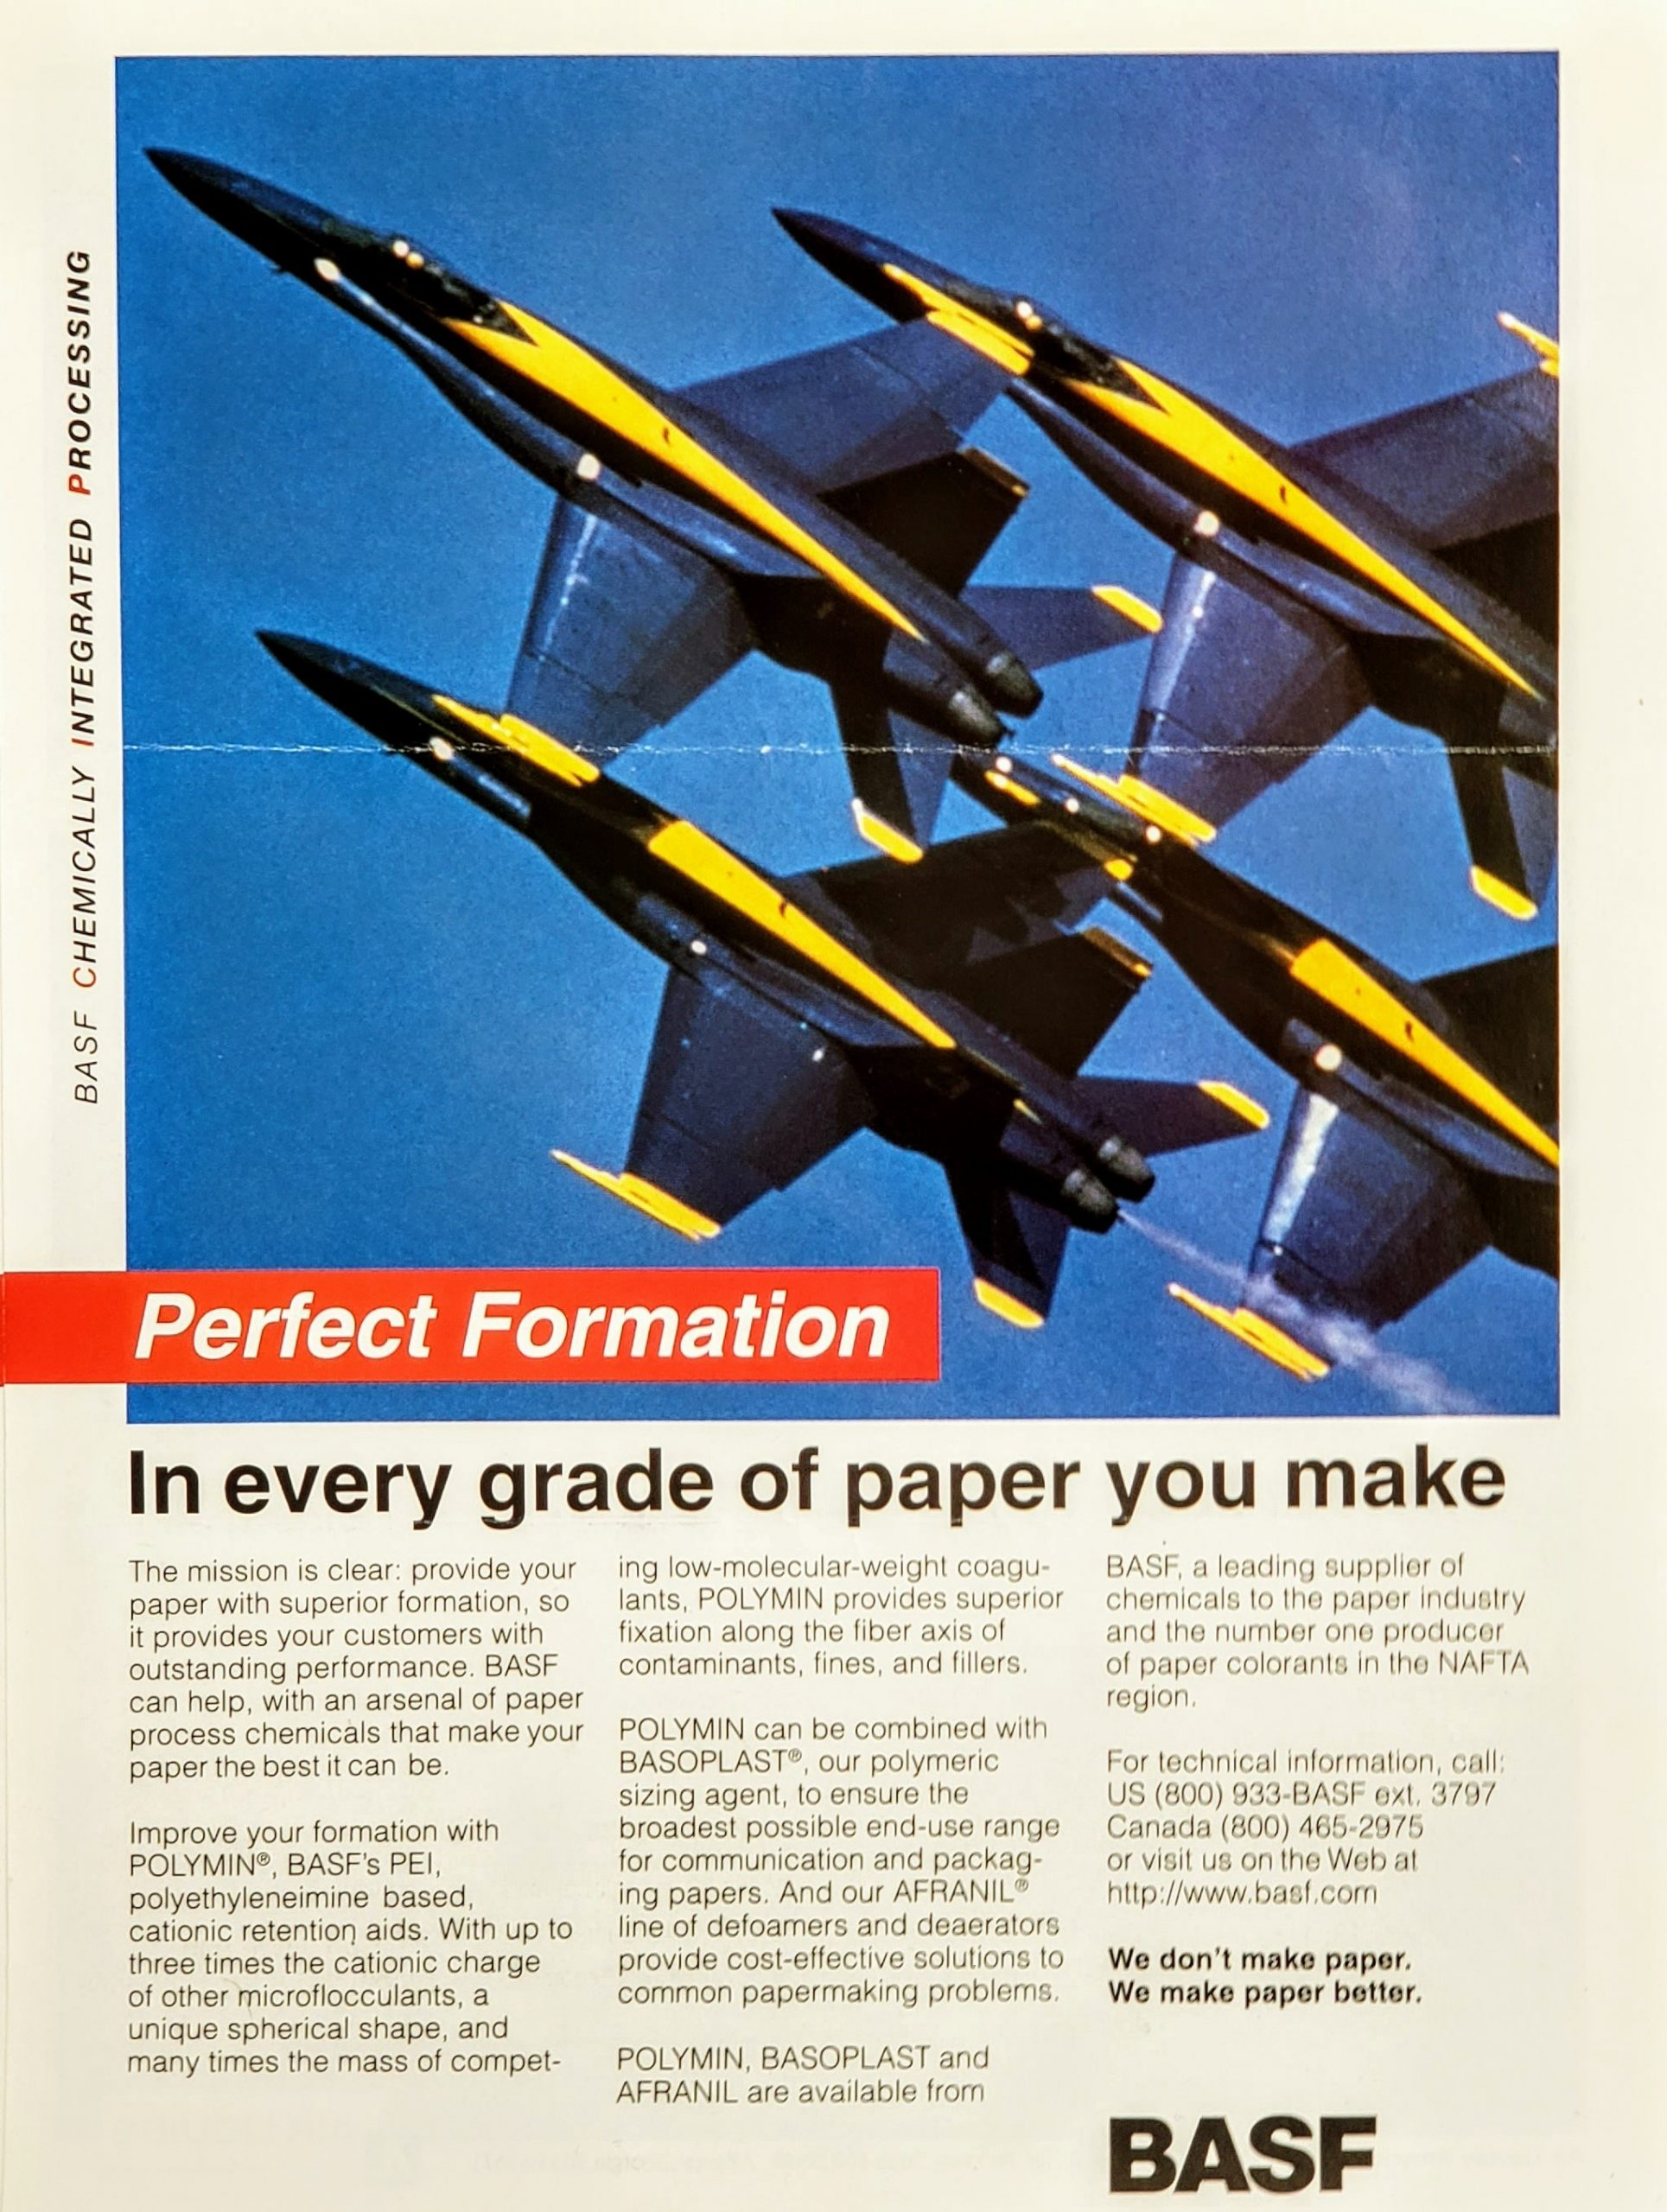 basf_perfect formation_ad_5